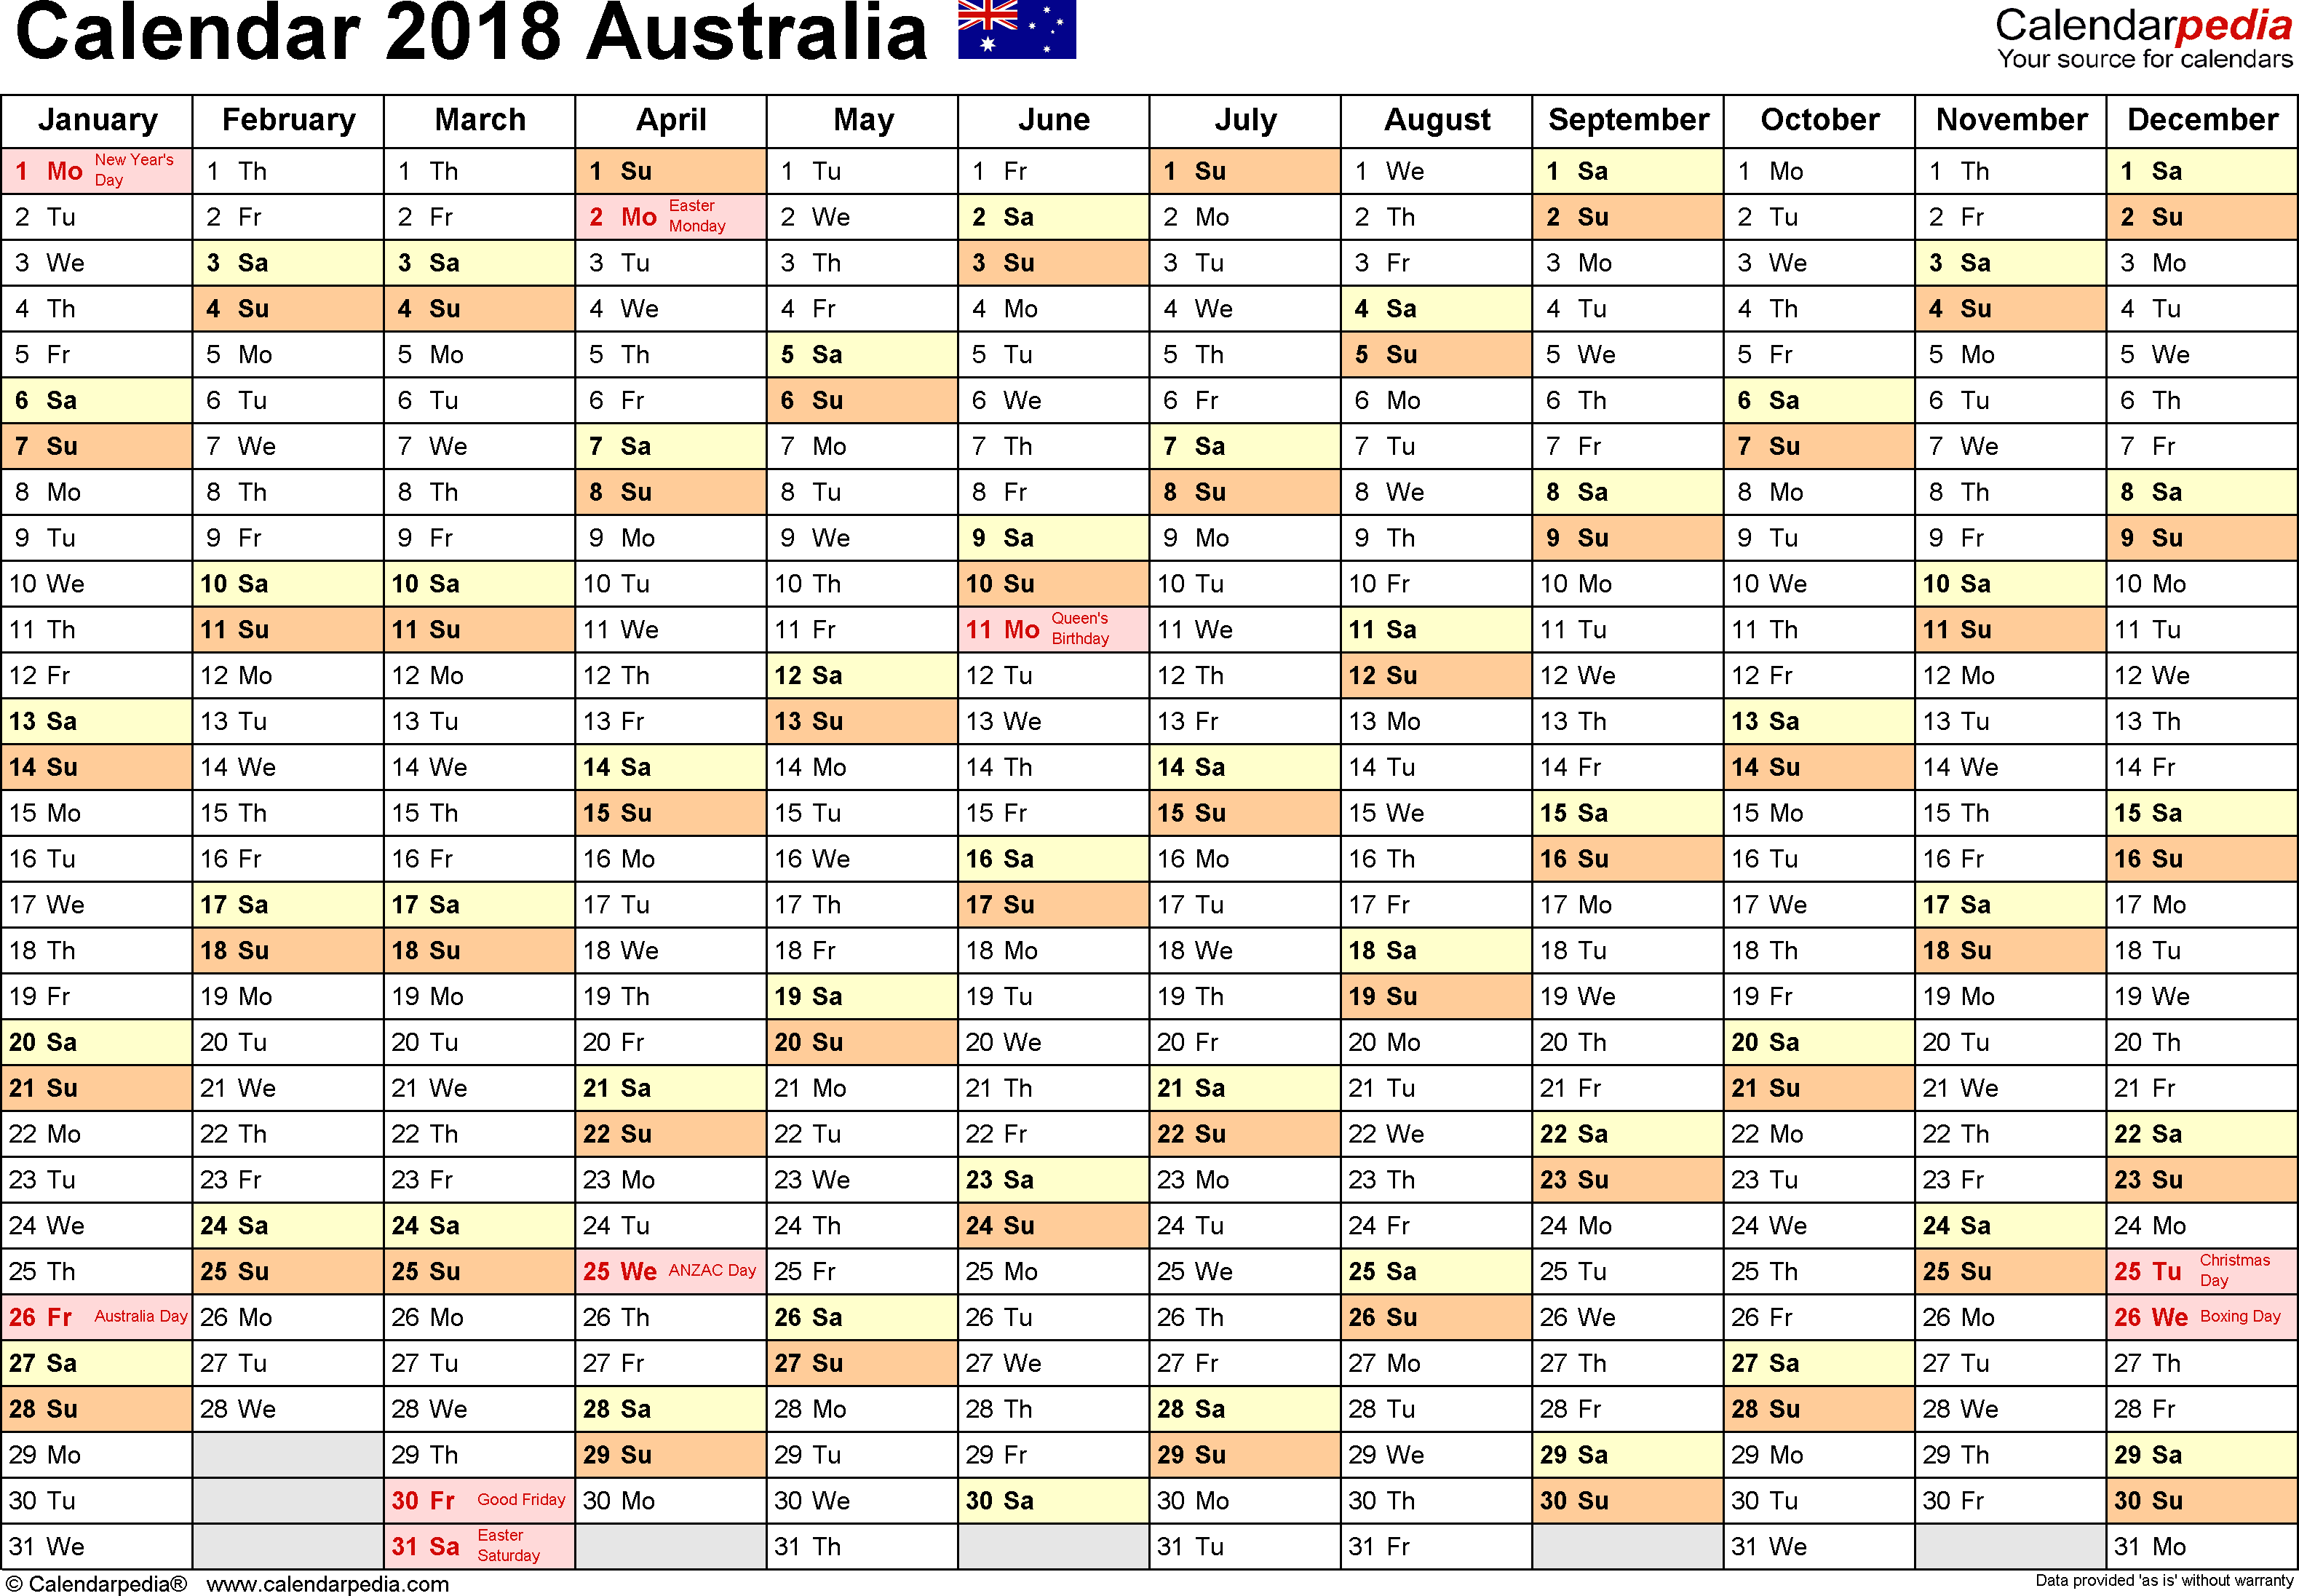 Download Template 2: Calendar 2018 Australia for Microsoft Word (.docx file), landscape, 1 page